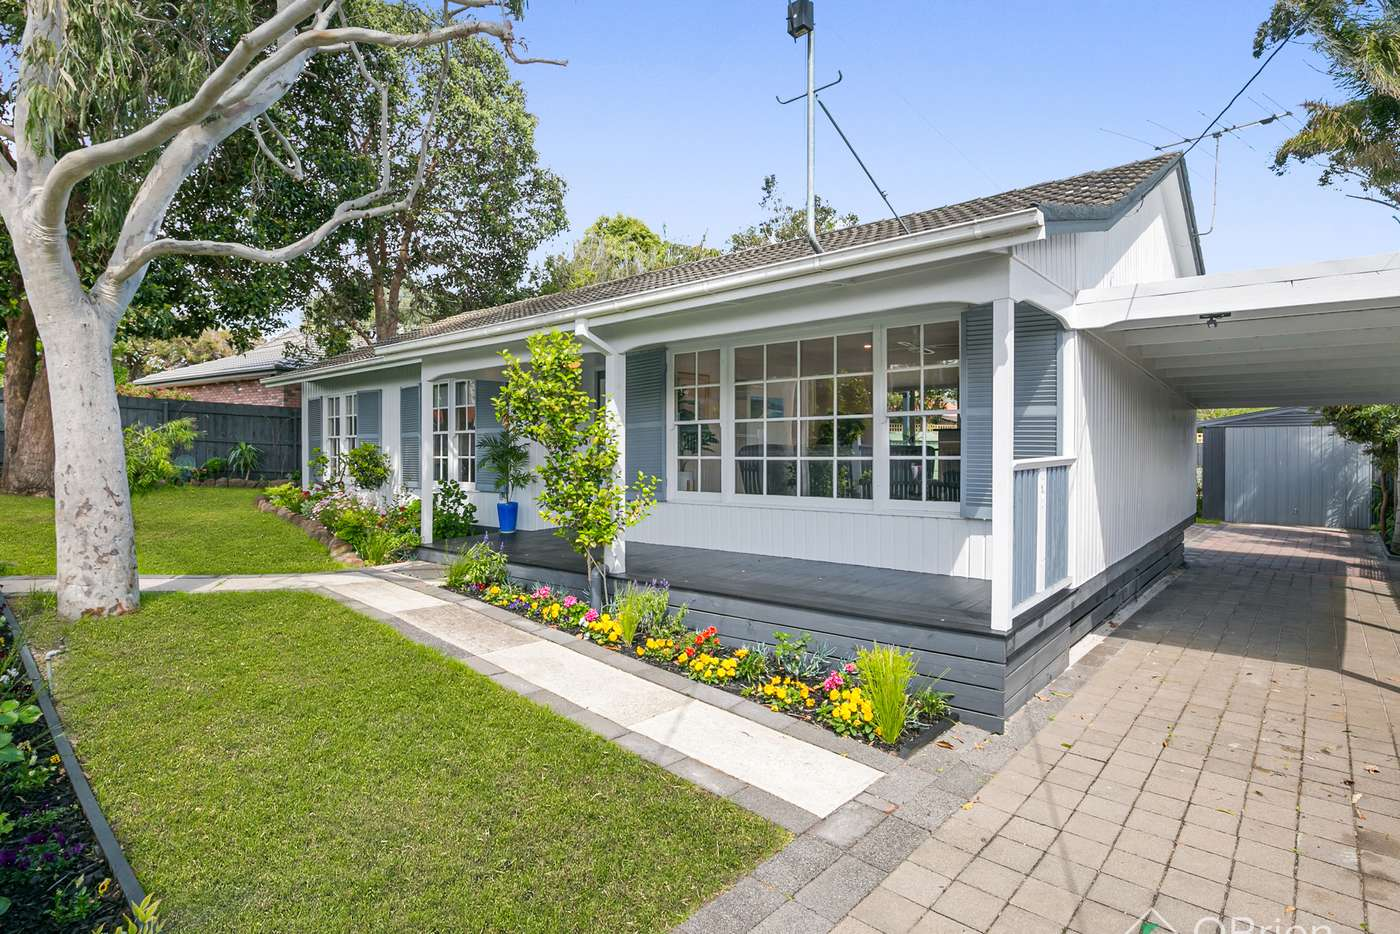 Main view of Homely house listing, 70 Belar Avenue, Frankston VIC 3199